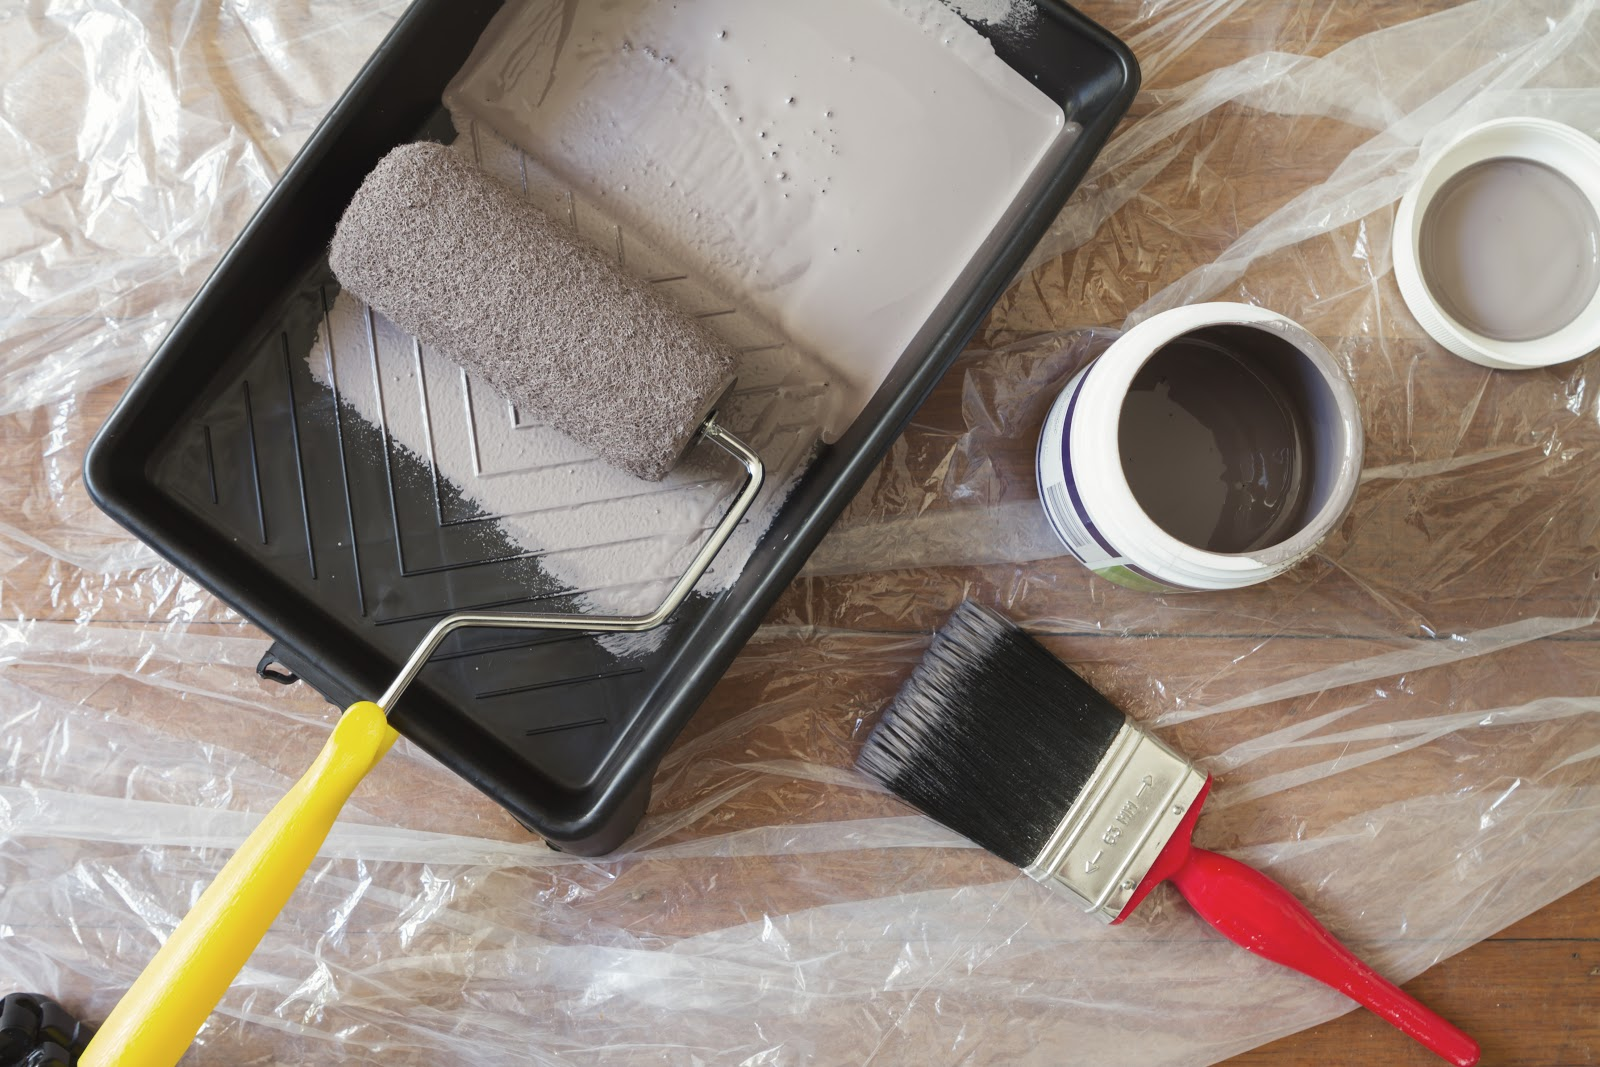 home painting ideas: picking applicators